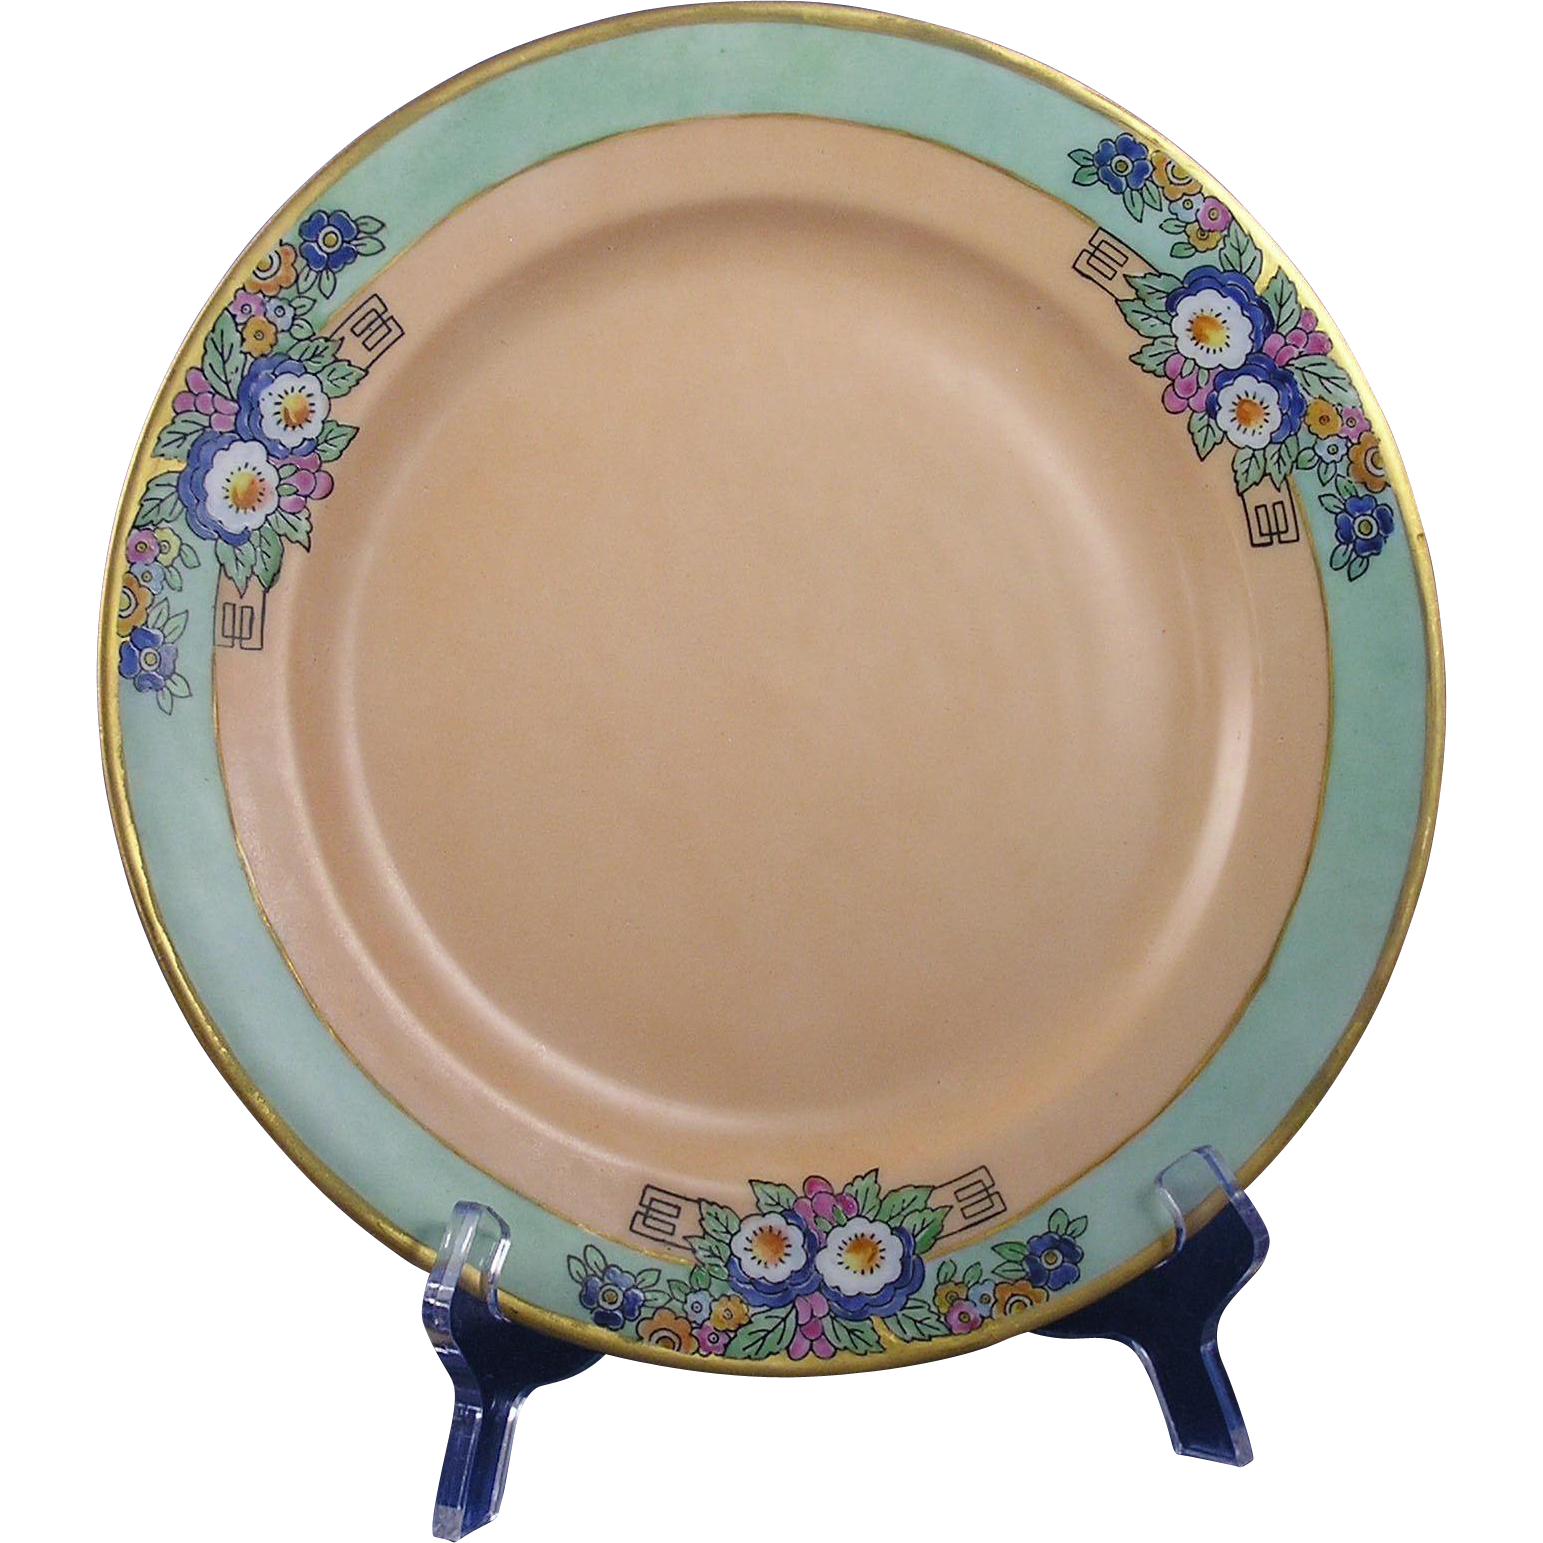 Haviland Limoges Arts & Crafts Enameled Floral Motif Plate (c.1909-1931) - Keramic Studio Design